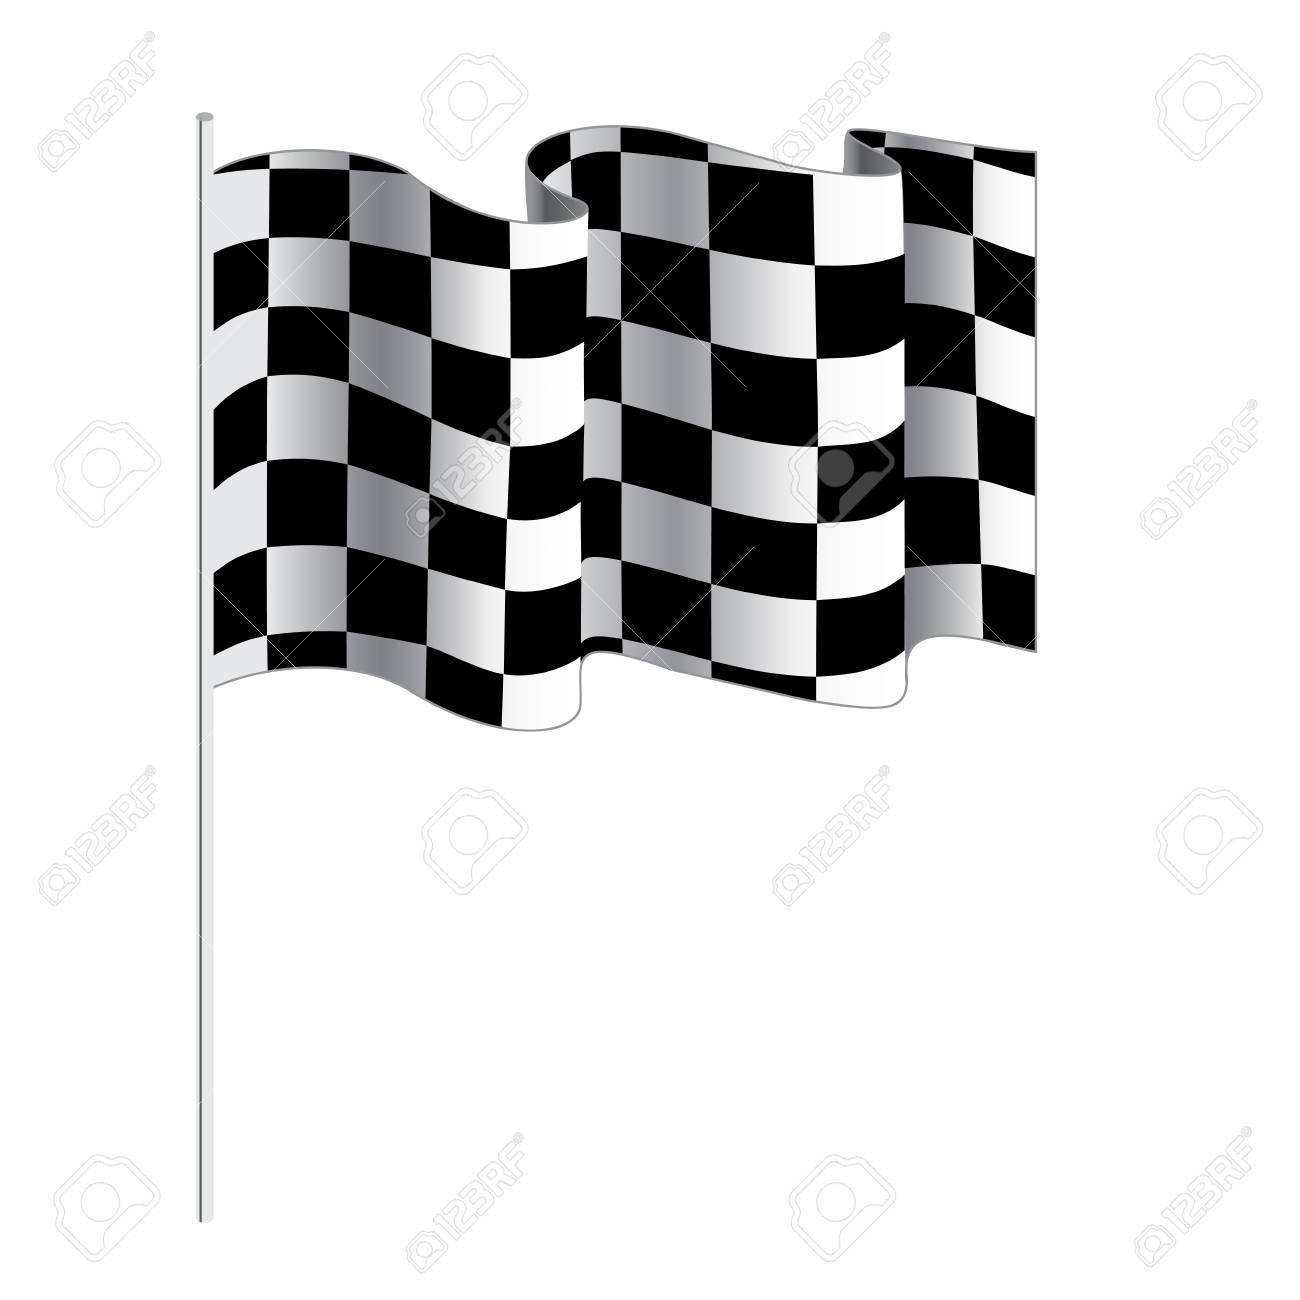 Checkered Flag For Car Racing Vector Illustration Isolated On White Background Finish